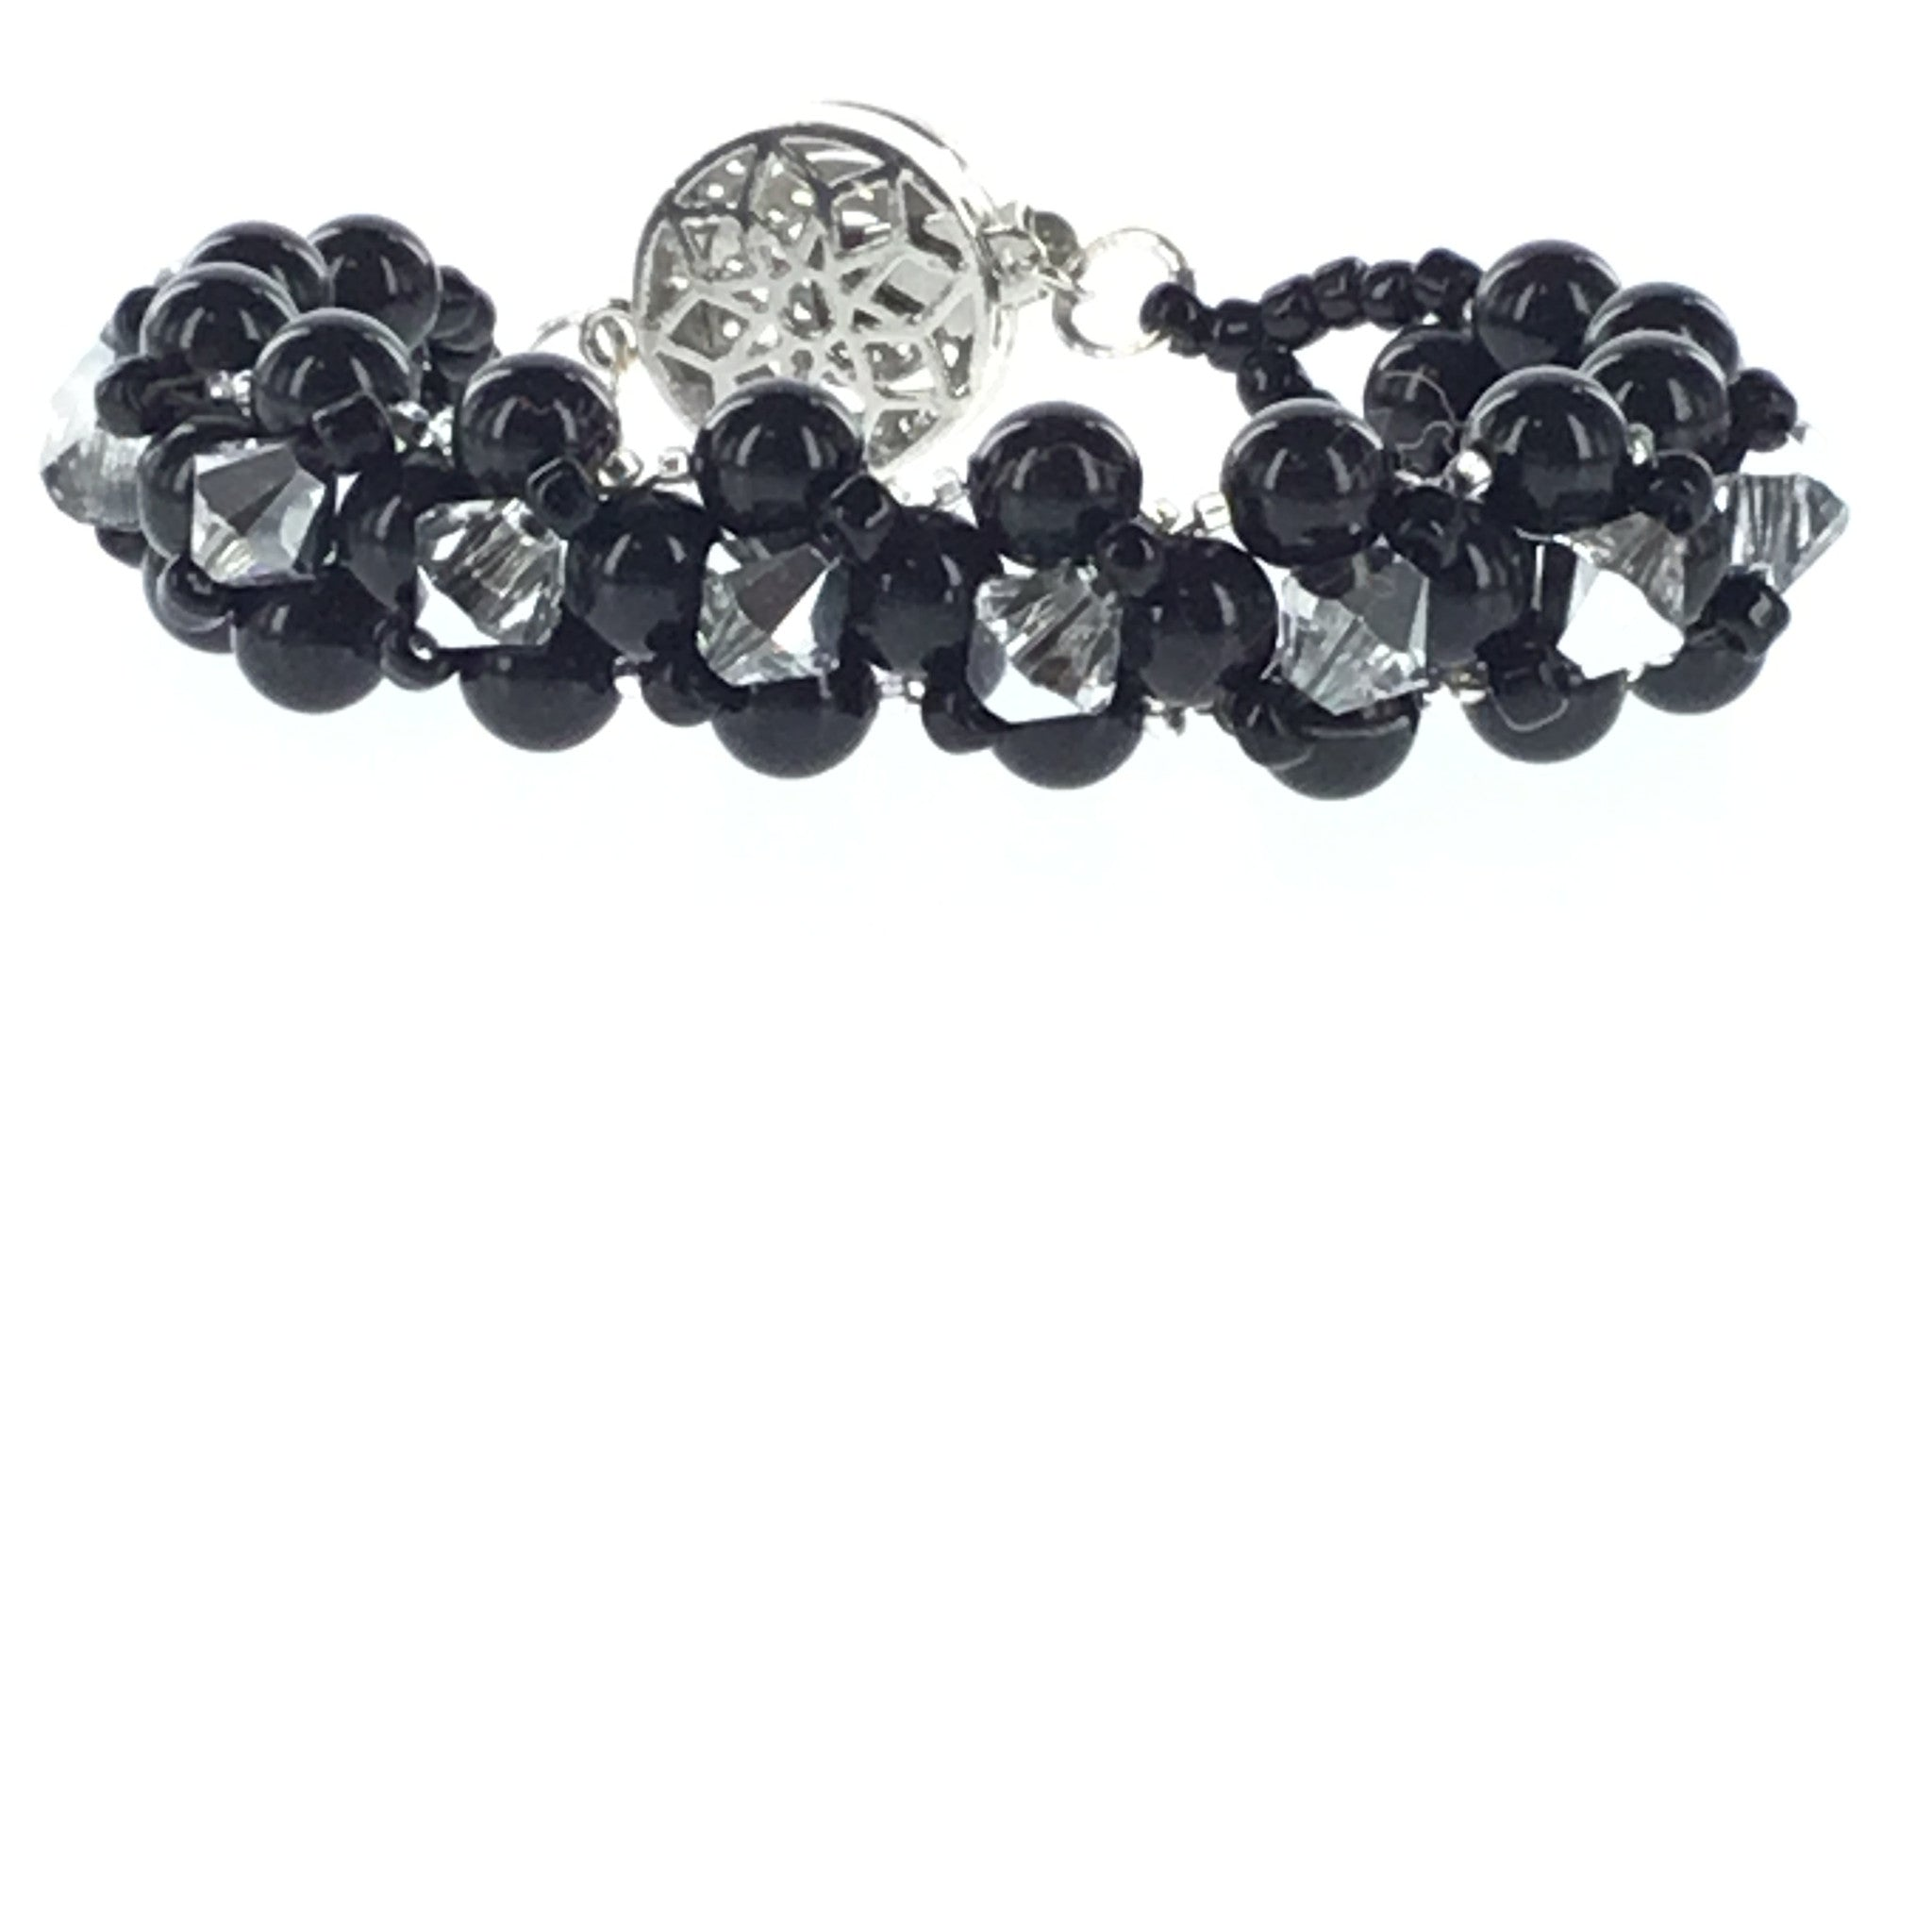 Swarovski Black Pearl and Crystal Bracelet - Real Chic Boutique  - 6